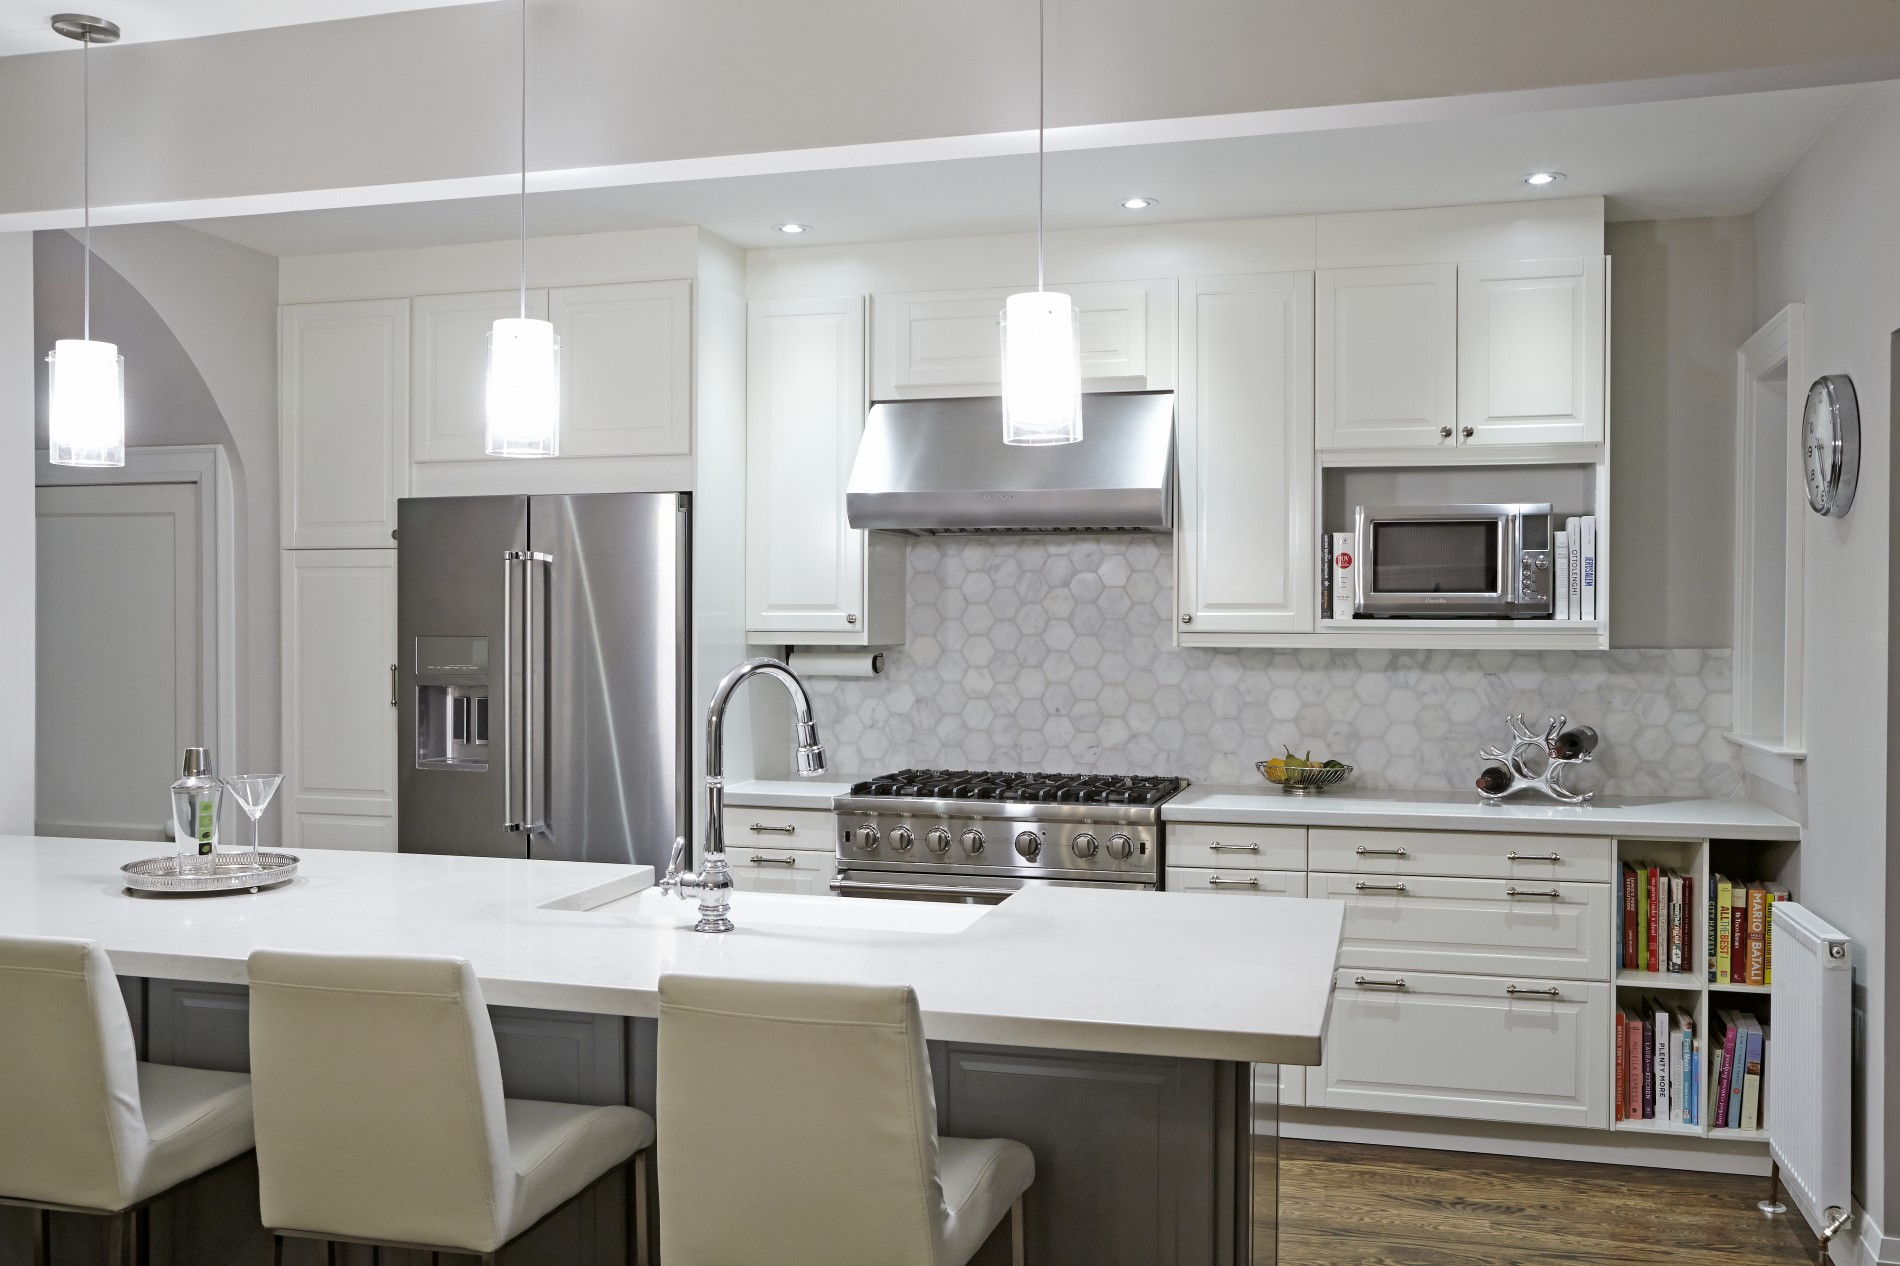 Little Italy Traditional Kitchen - Featured Image